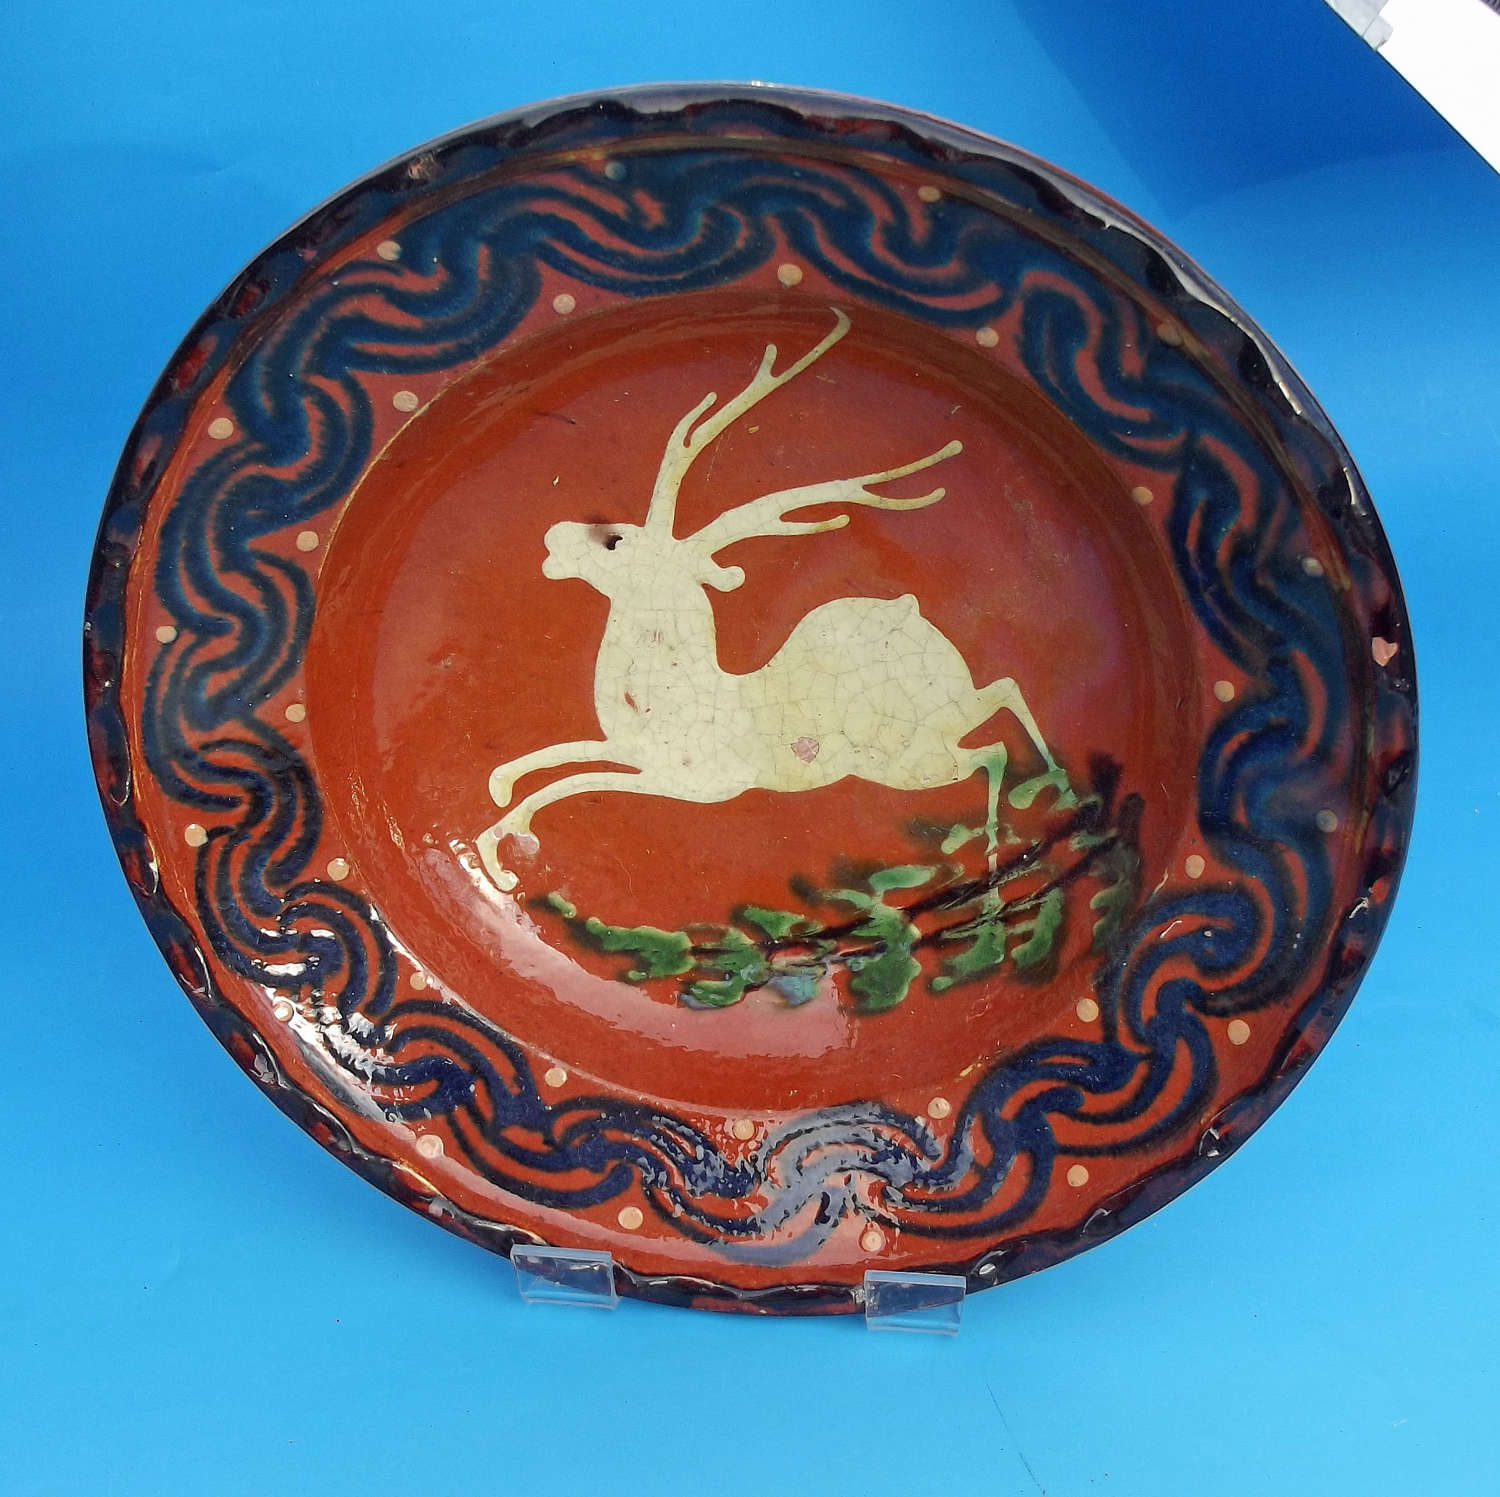 19thc Continental Pottery Slipware Tin Glazed Dish. C1840-60.